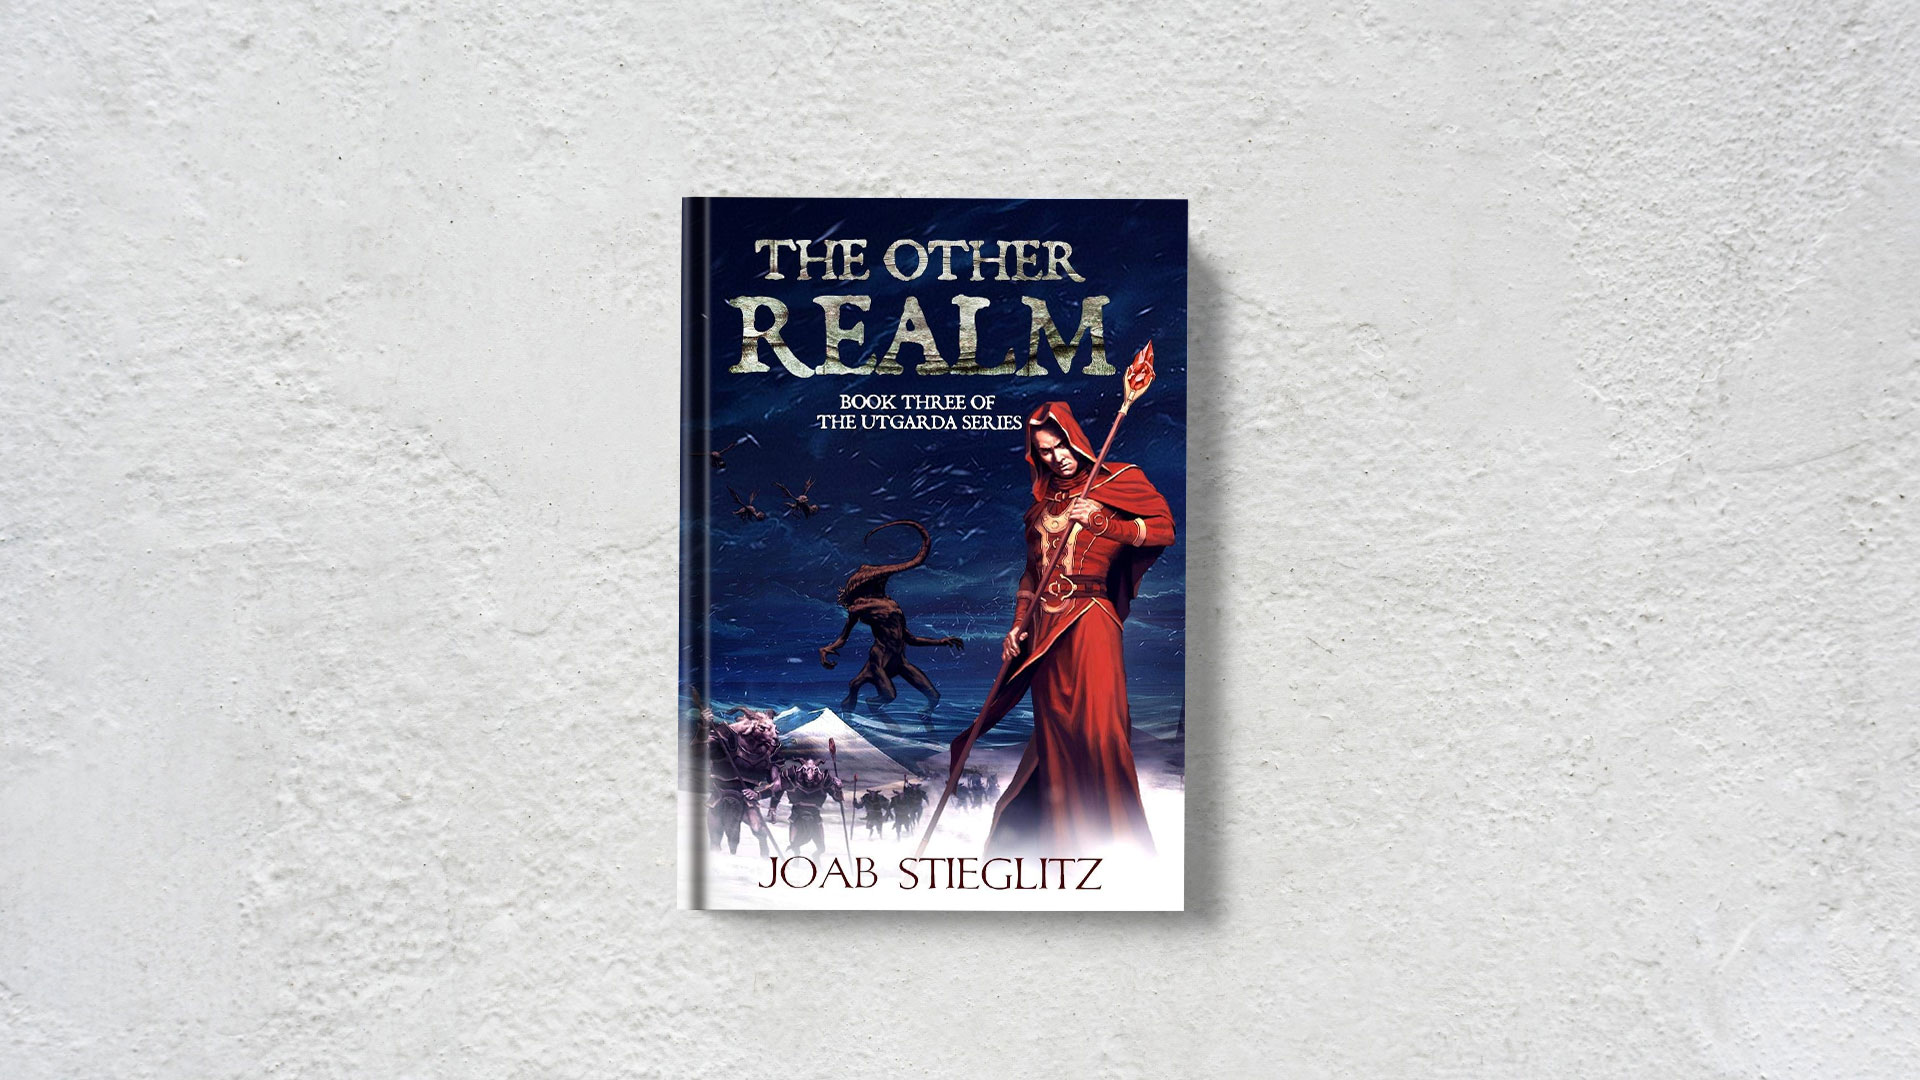 The-Other-Realm-by-Joab-Stieglitz banner